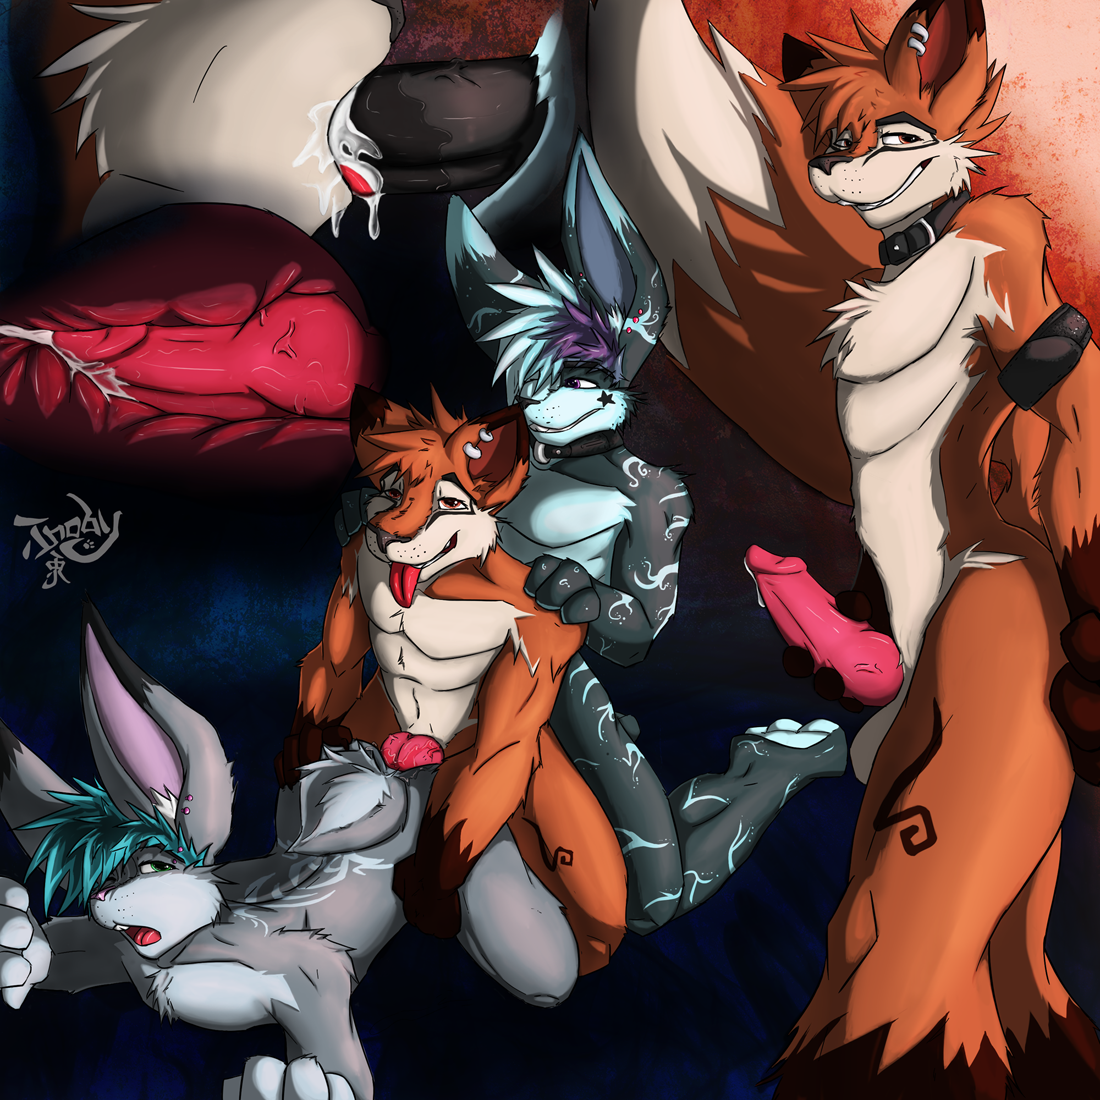 4983_INoby_commision_foxy_fasmall